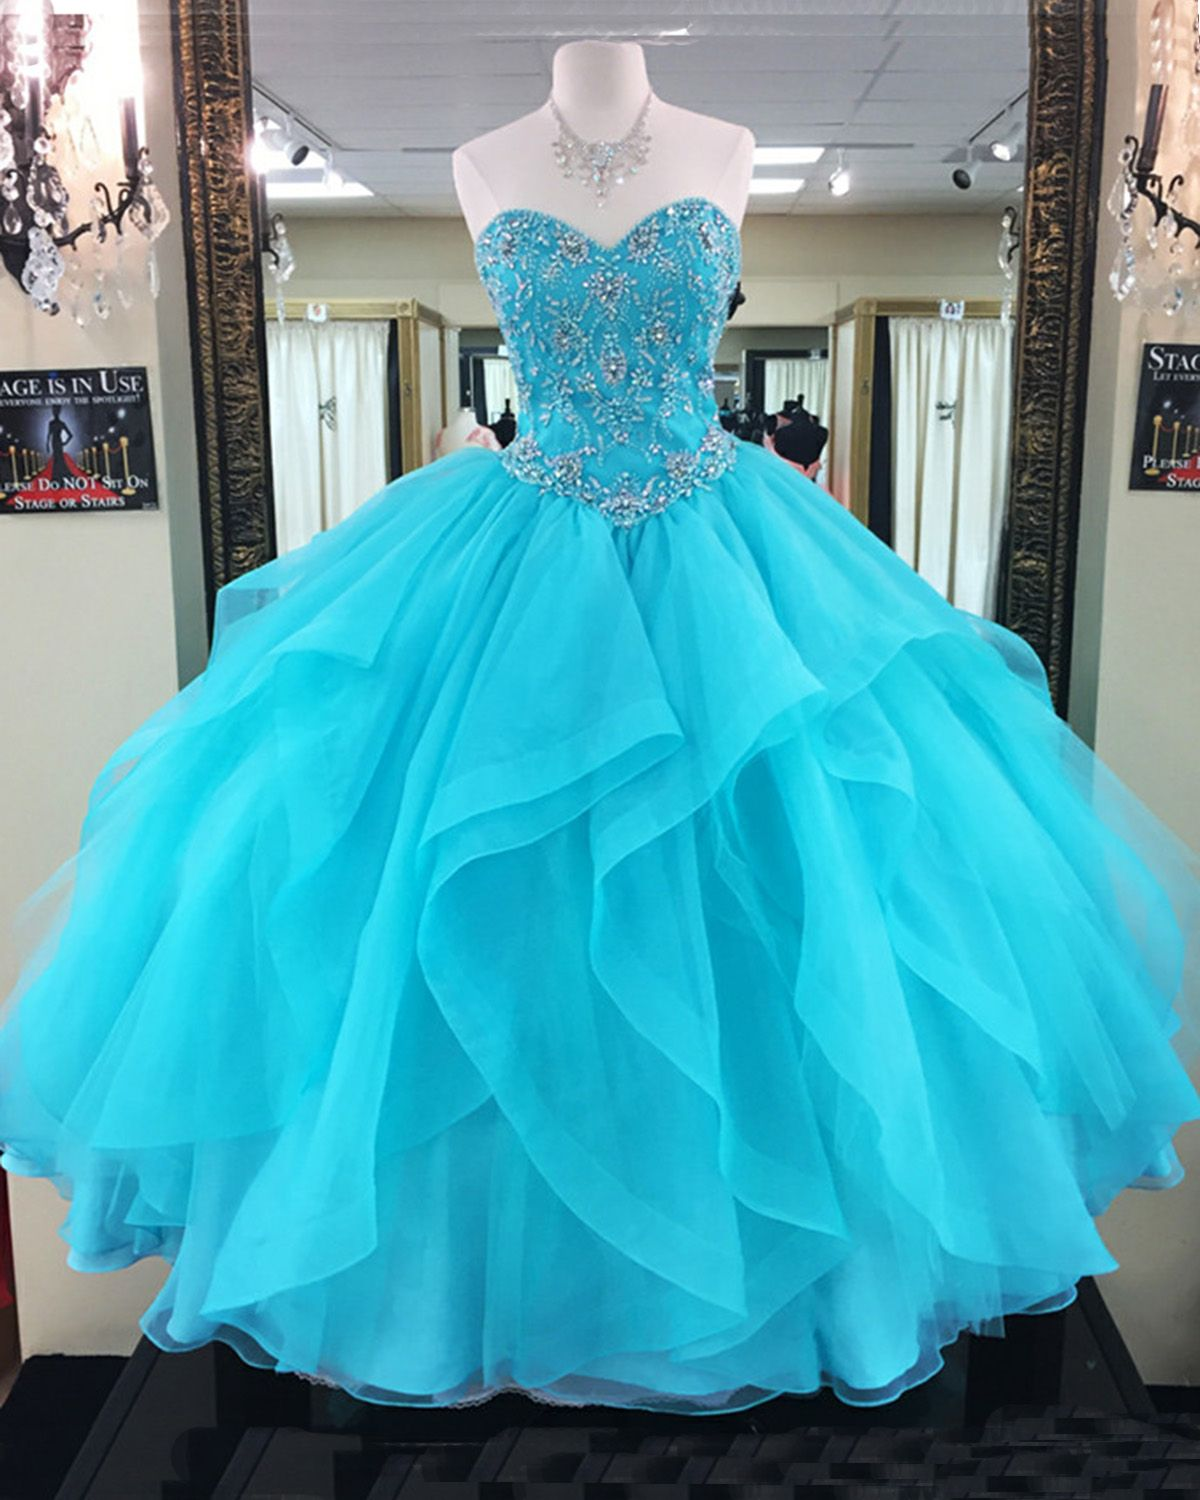 Beaded blue organza prom dress layered prom dress ball gown